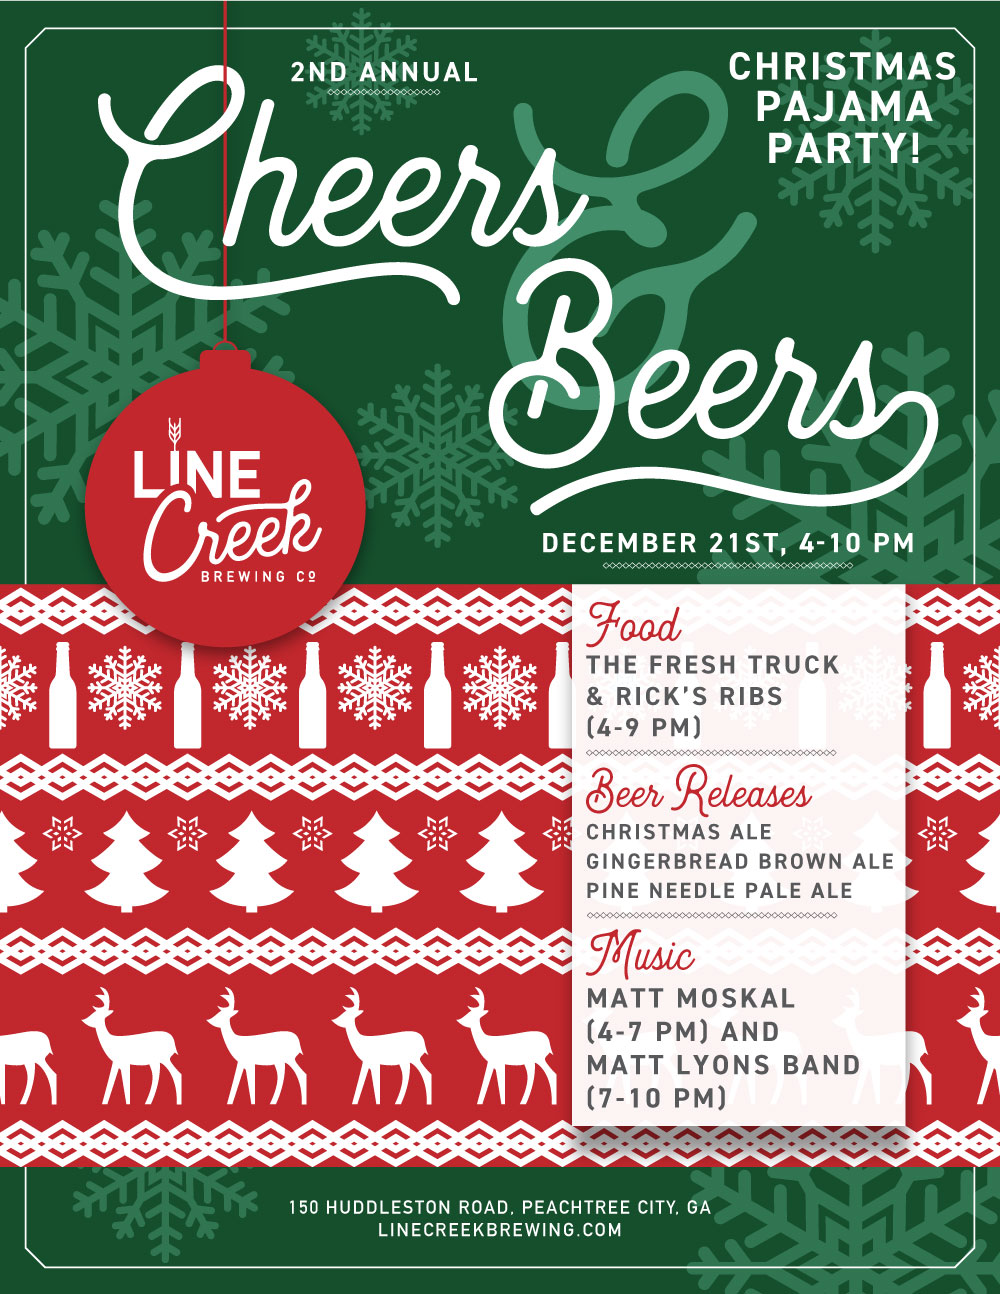 https://linecreekbrewing.com/wp-content/uploads/2019/11/Christmas-PJ-party.jpg